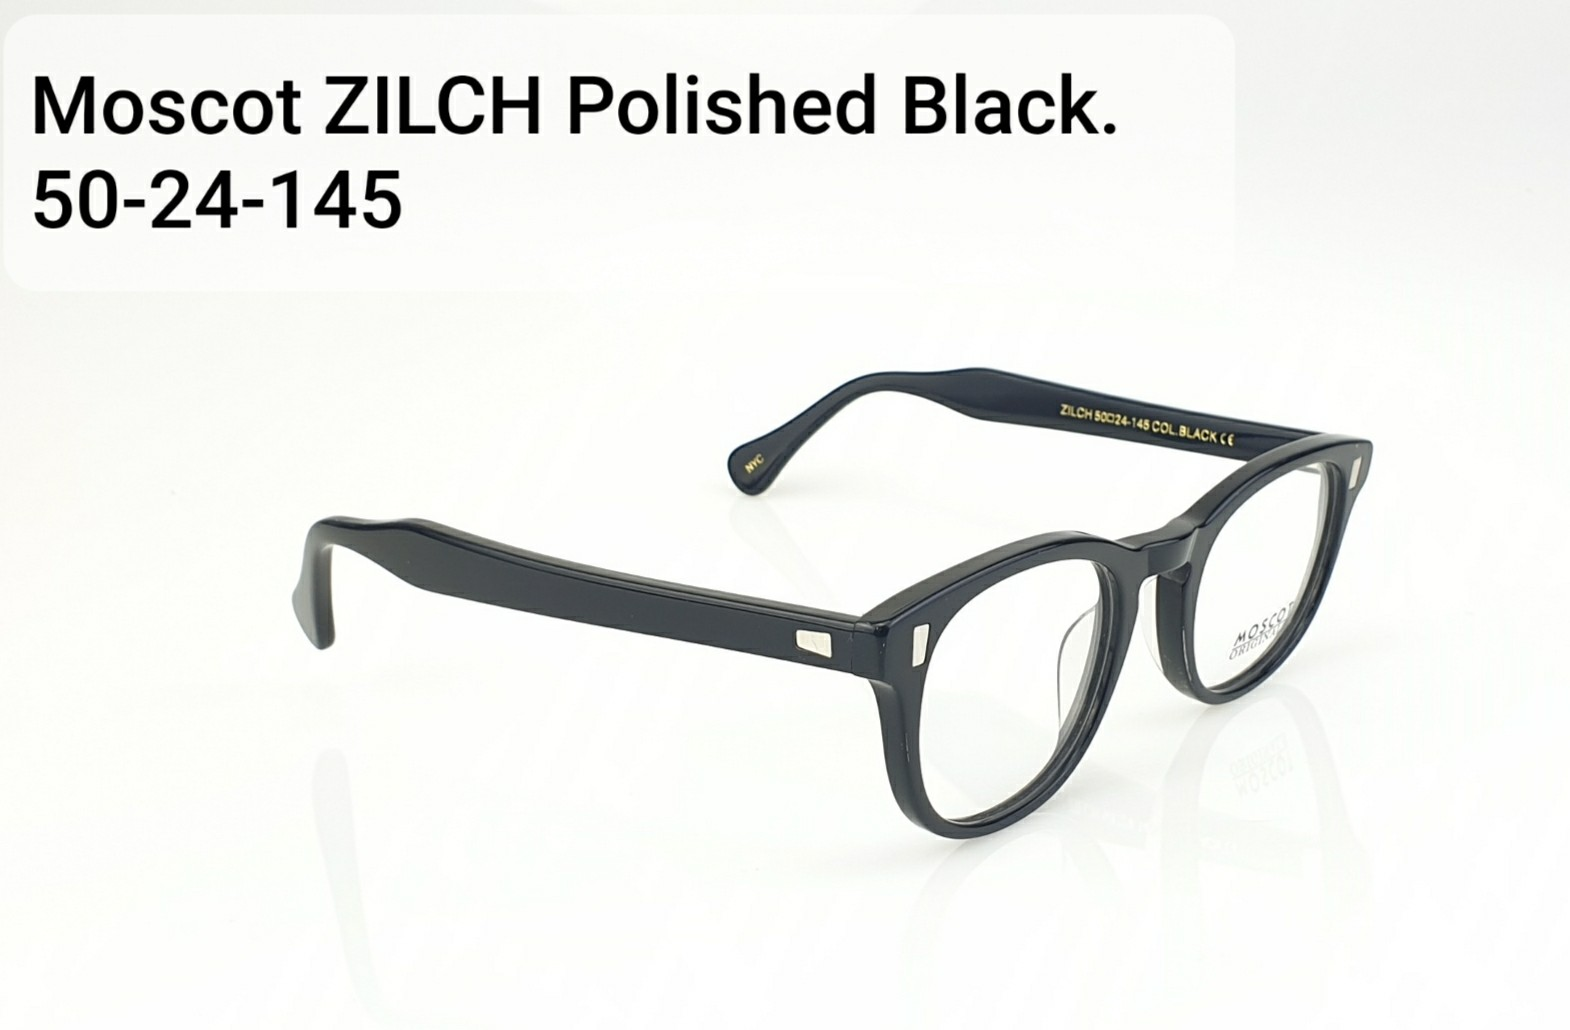 Moscot Zilch